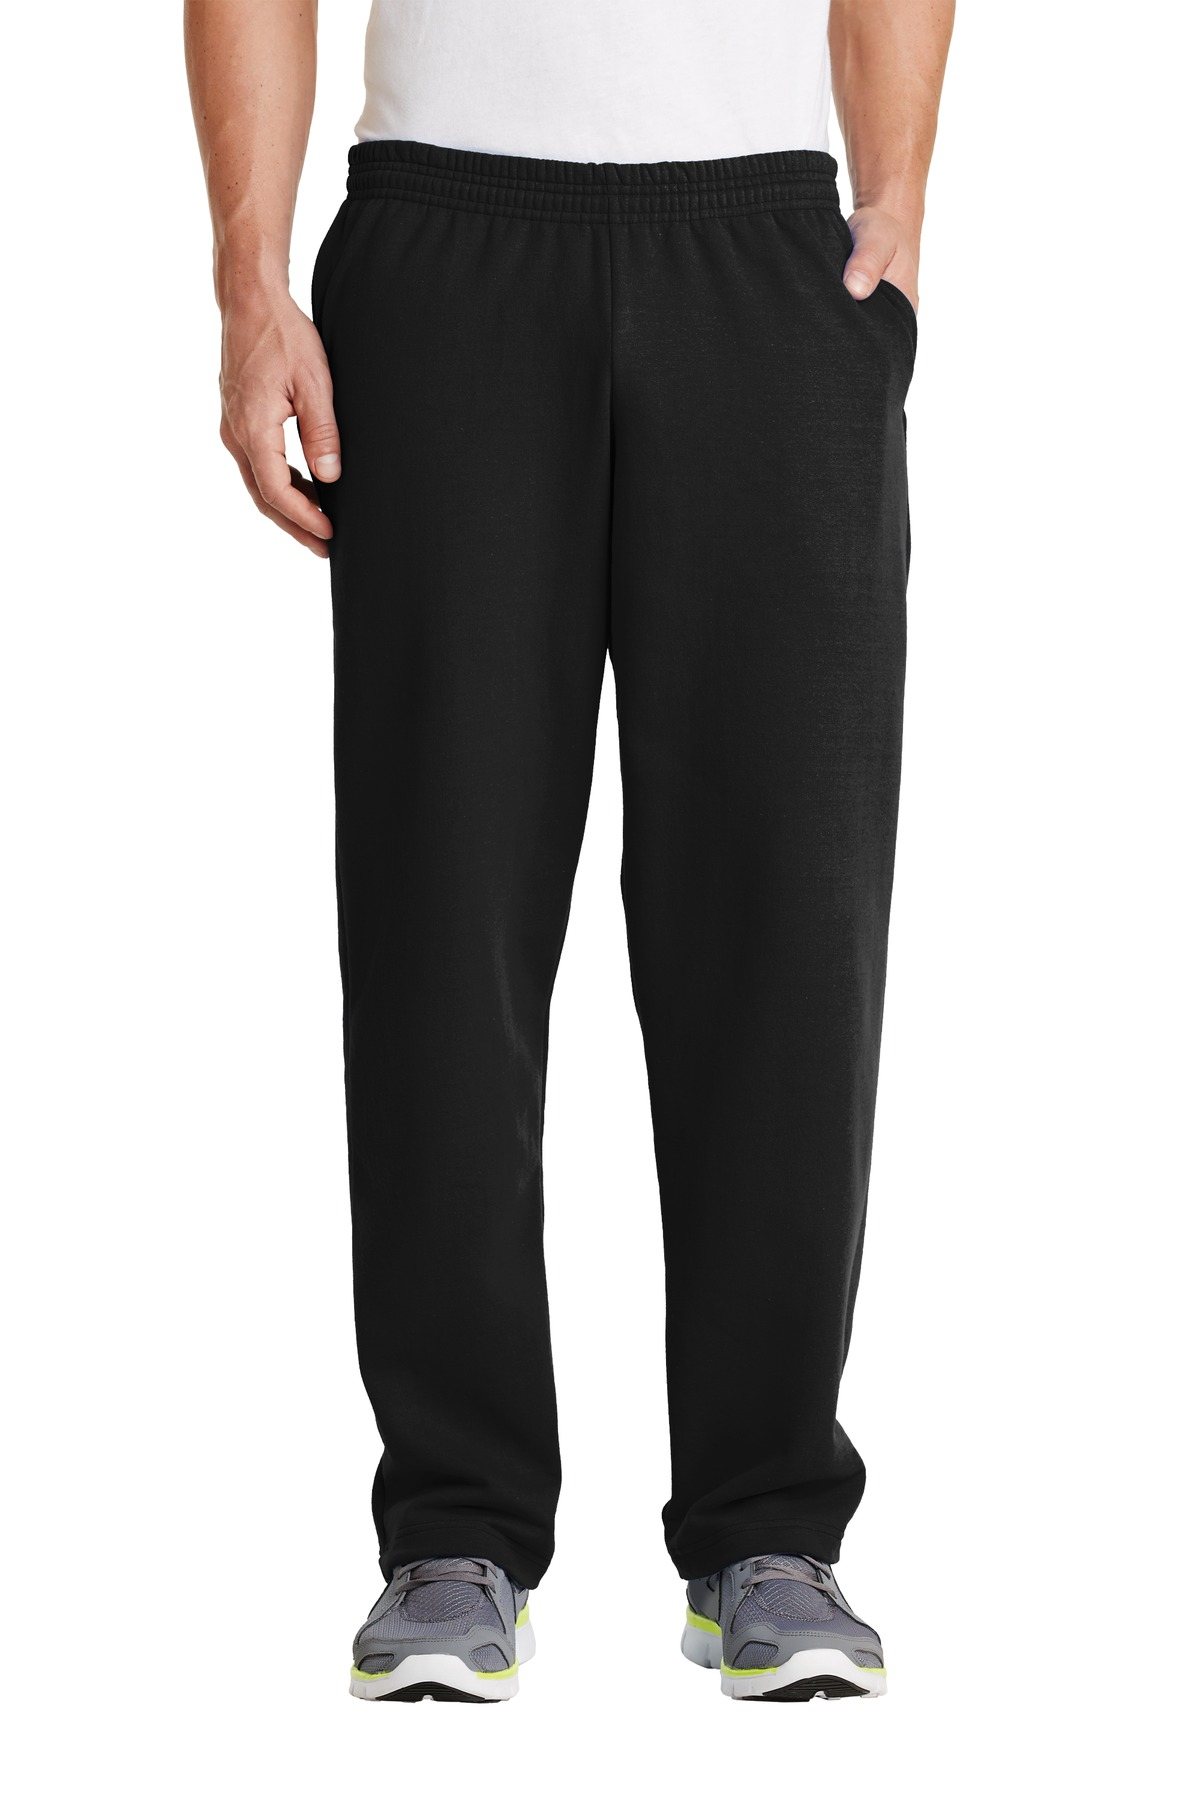 Port & Company ®  - Core Fleece Sweatpant with Pockets. PC78P - Jet Black